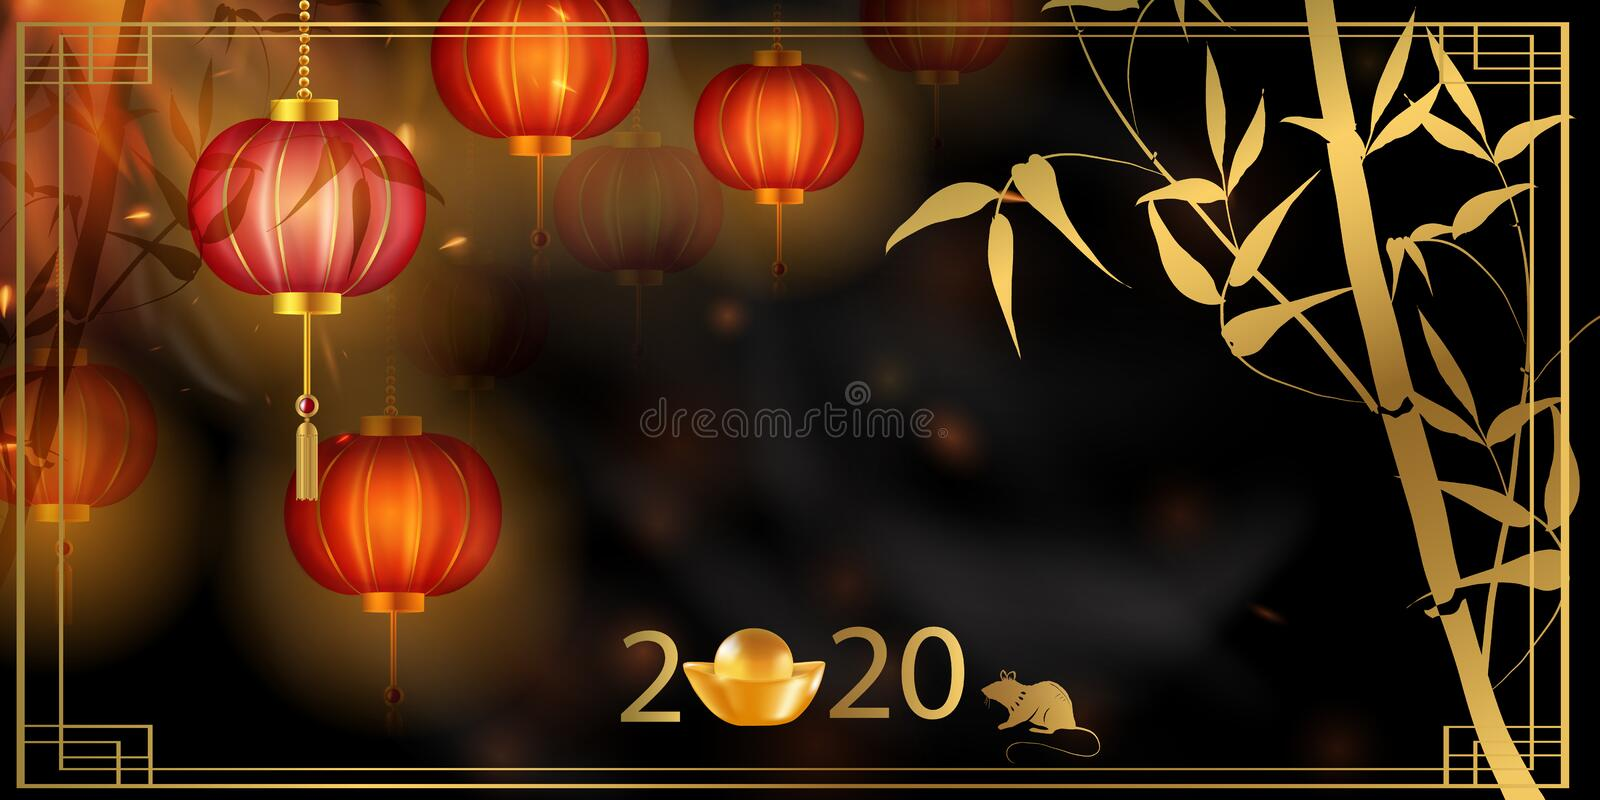 2020 Chinese New Year Rat zodiac sign. Red and gold festive background with rat. Chinese New Year Background with Lanterns and Light Effect. Banner, poster stock illustration